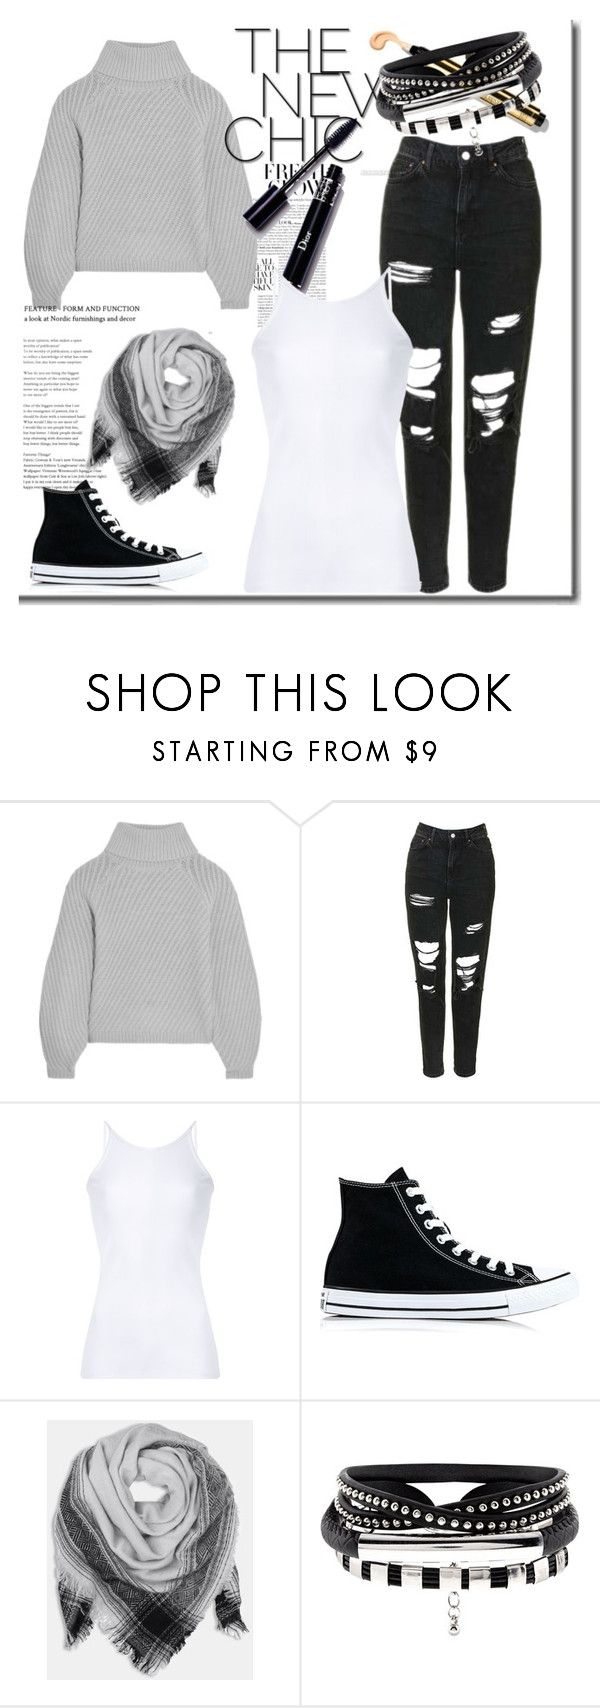 """""""Classy And Fabulous"""" by angelaxblackbear ❤ liked on Polyvore featuring Iris & Ink, Topshop, Christopher Esber, Converse and BeckSöndergaard"""